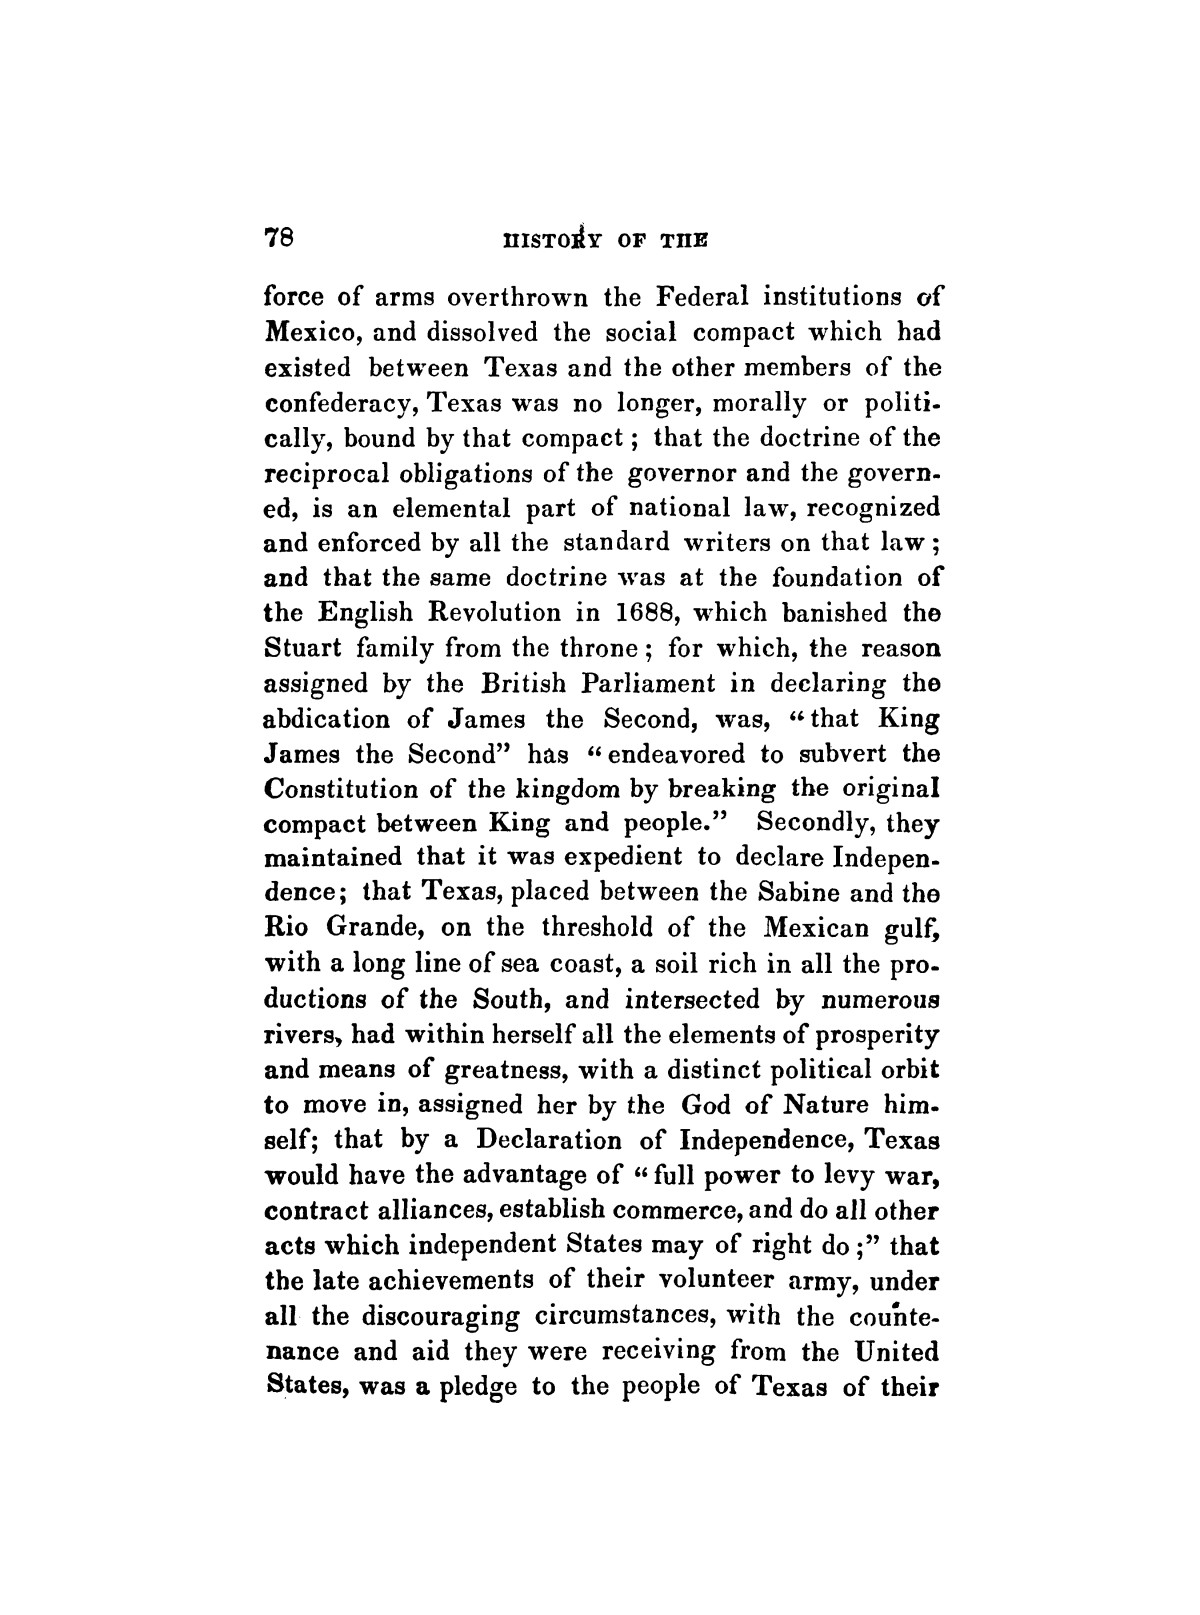 History of the revolution in Texas, particularly of the war of 1835 & '36; together with the latest geographical, topographical, and statistical accounts of the country, from the most authentic sources. Also, an appendix. By the Rev. C. Newell.                                                                                                      [Sequence #]: 90 of 227